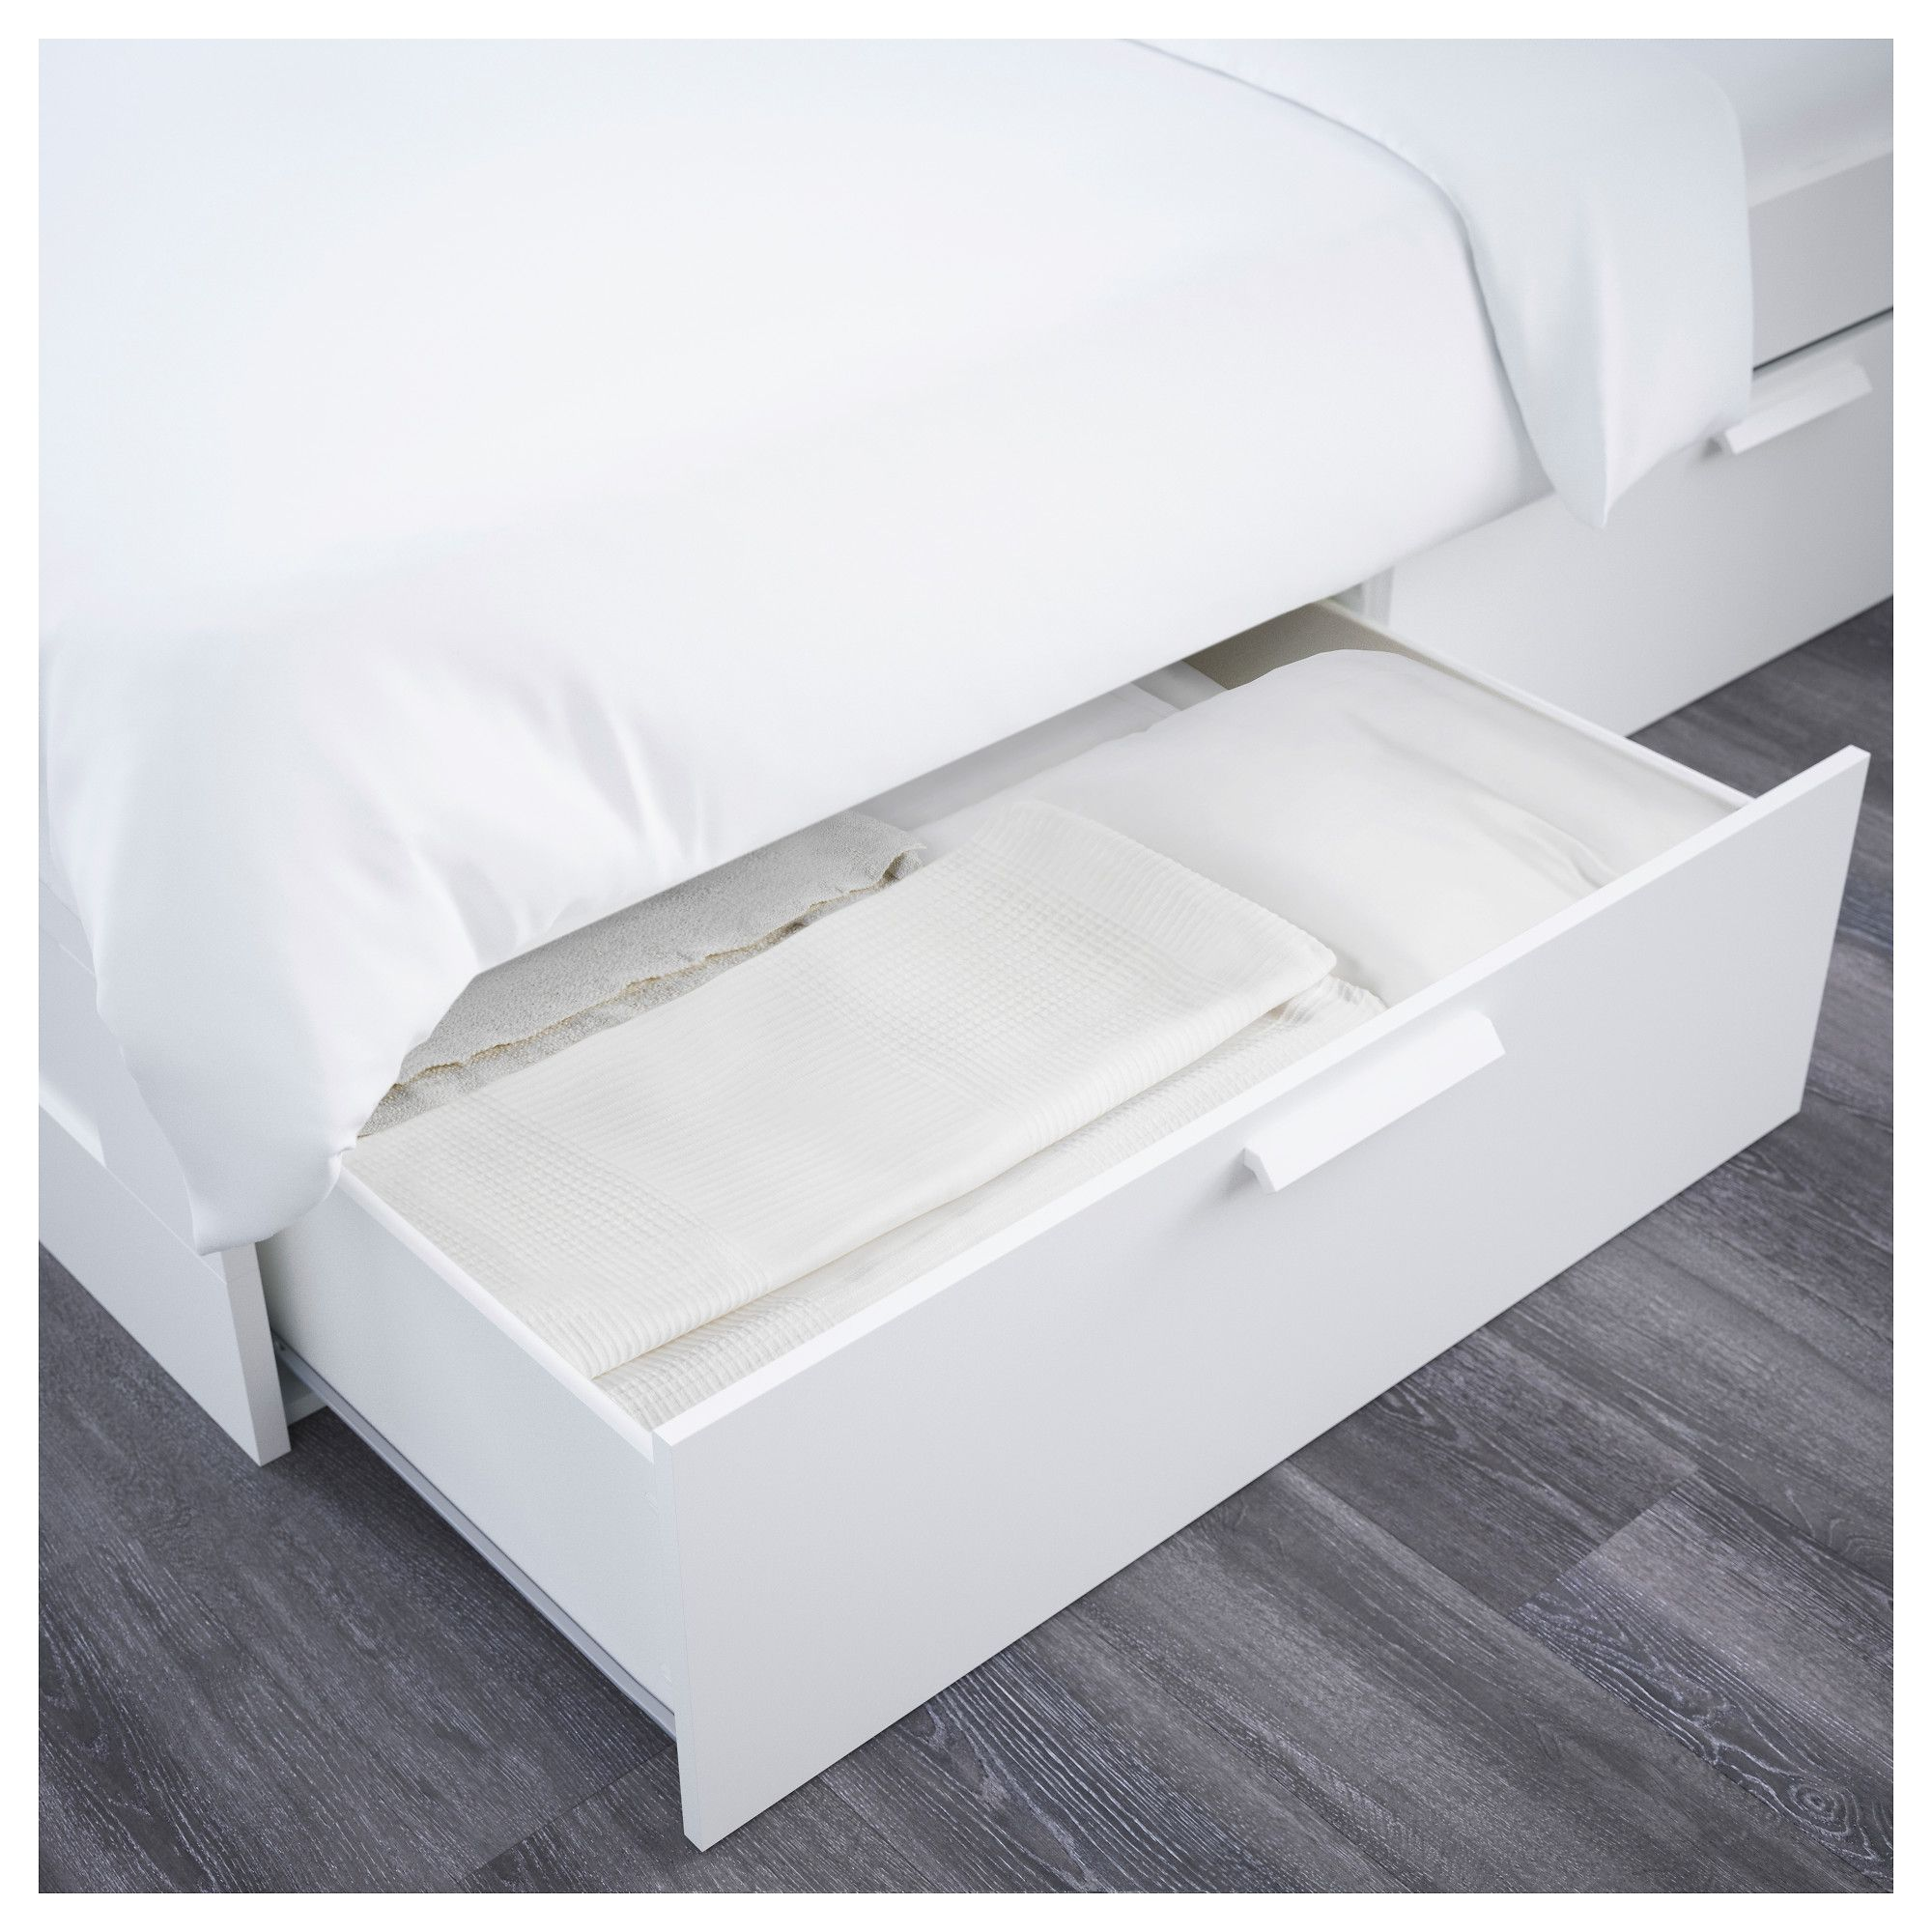 IKEA - BRIMNES Bed frame with storage & headboard white | Products ...